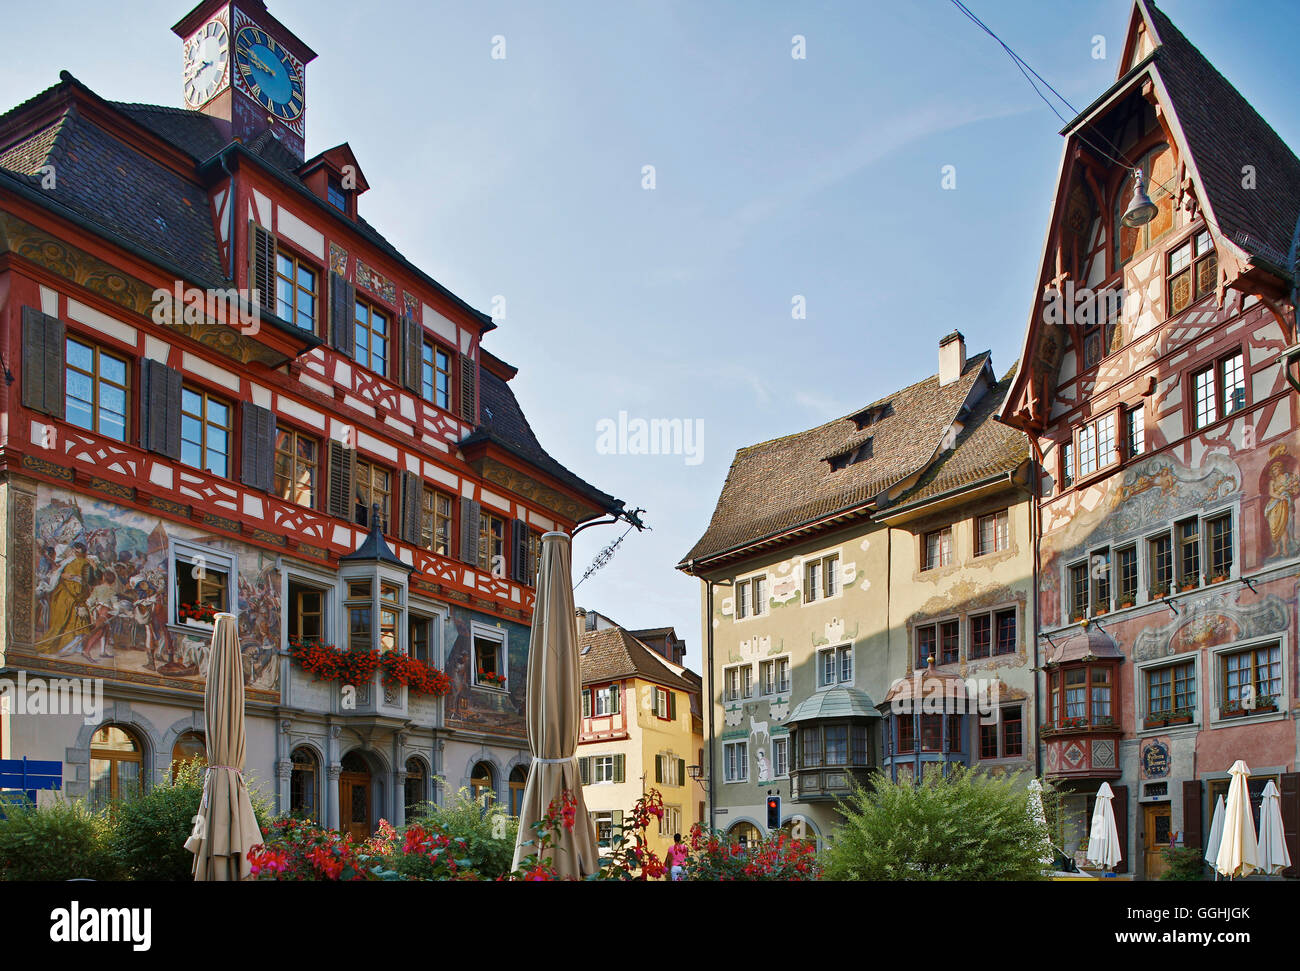 Bay windows and wall paintings on the facades of houses at Rathausplatz, Old city of Stein, Stein am Rhein, Hochrhein, - Stock Image